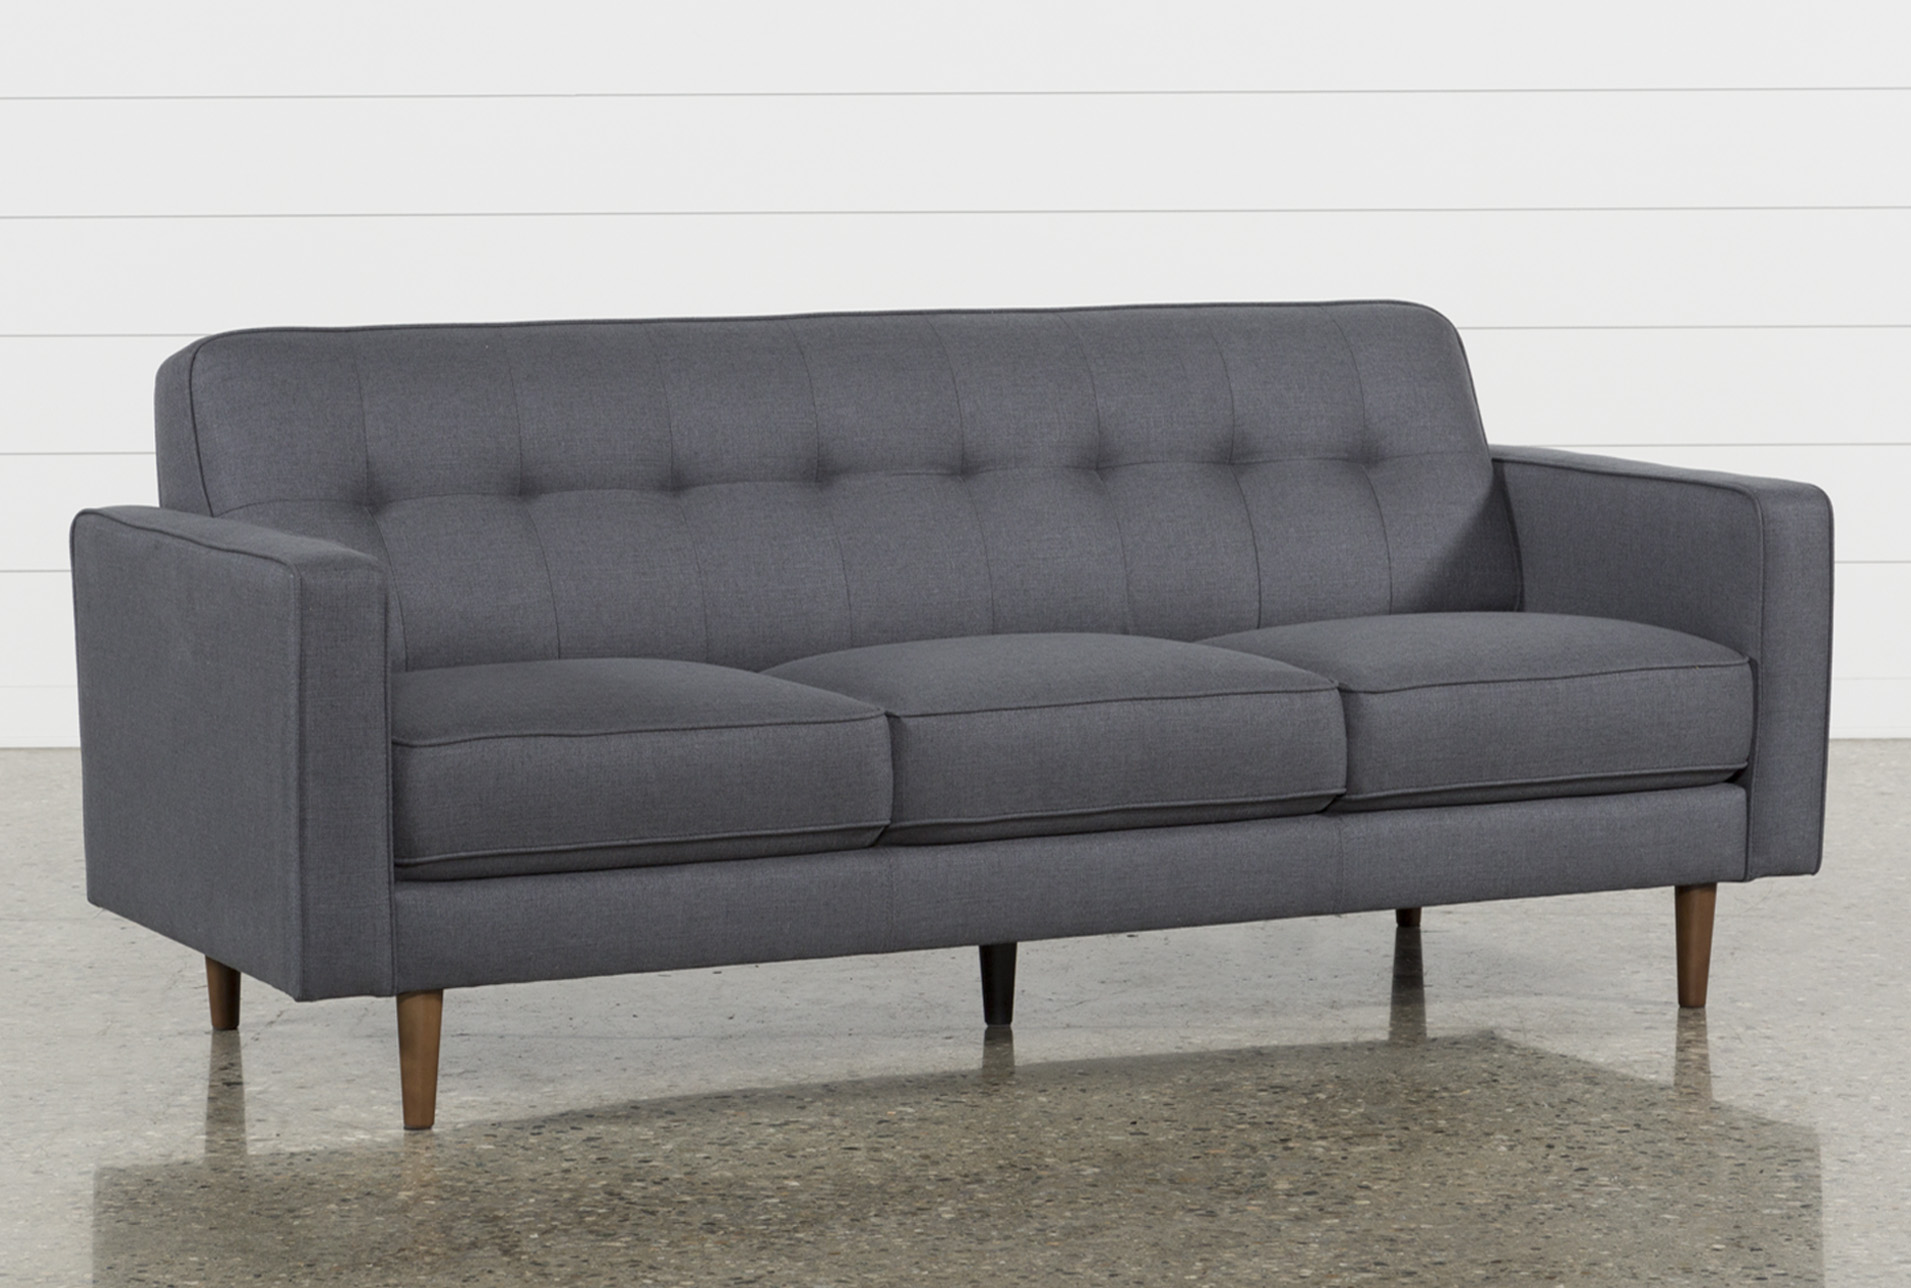 gray couch london dark gray sofa (Quantity: 1) has been successfully added to your LKWWUXK